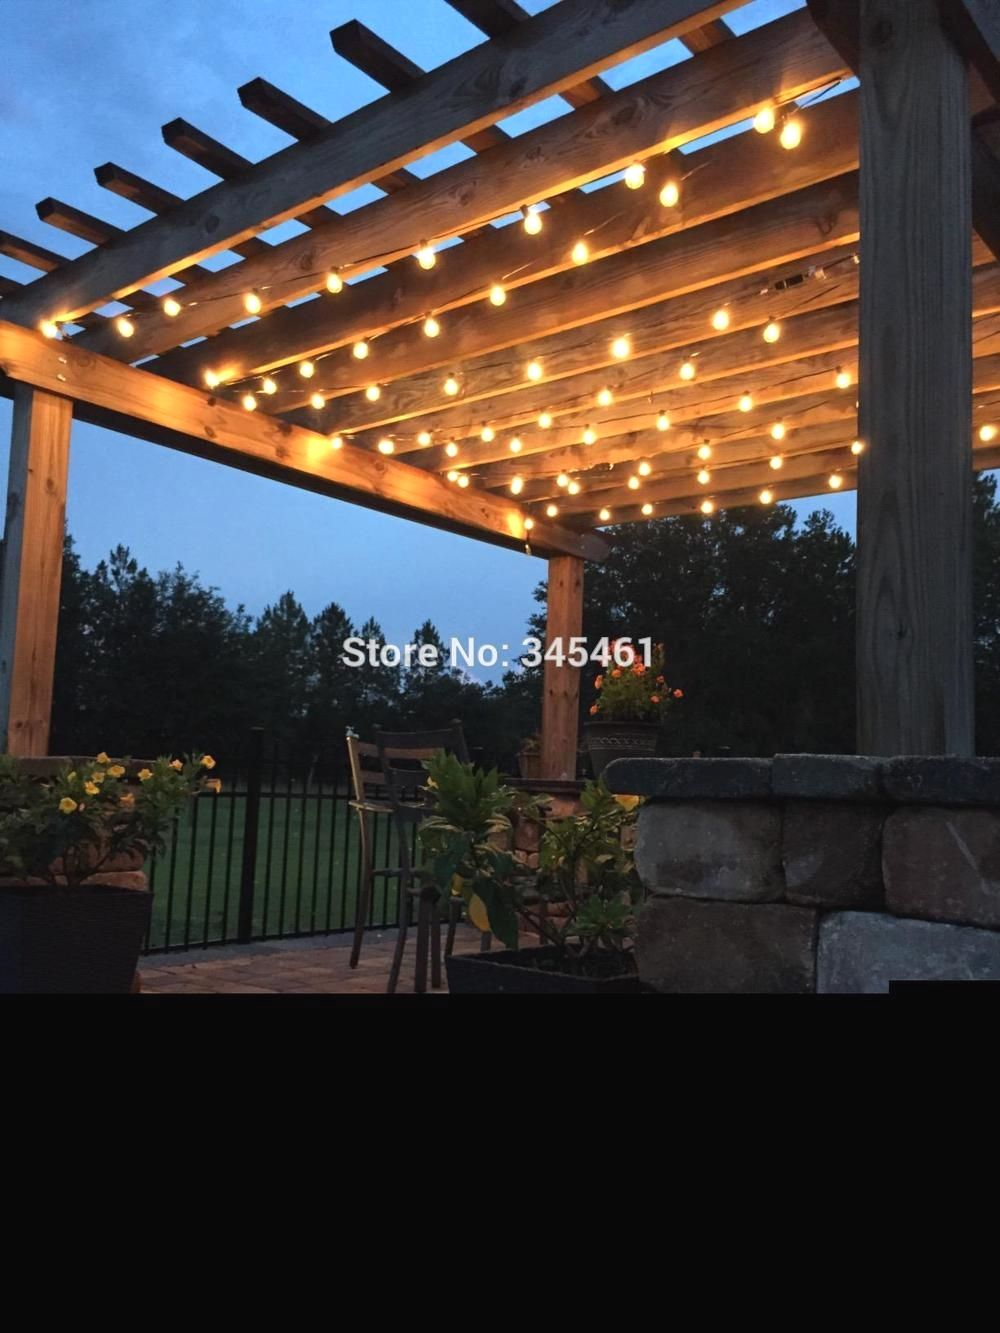 110 Creative Patio Lighting Ideas You Can Create Yourself To Add Beauty To Your Patios Pergola Pa Diy Outdoor Lighting Pergola Lighting Outdoor Patio Lights